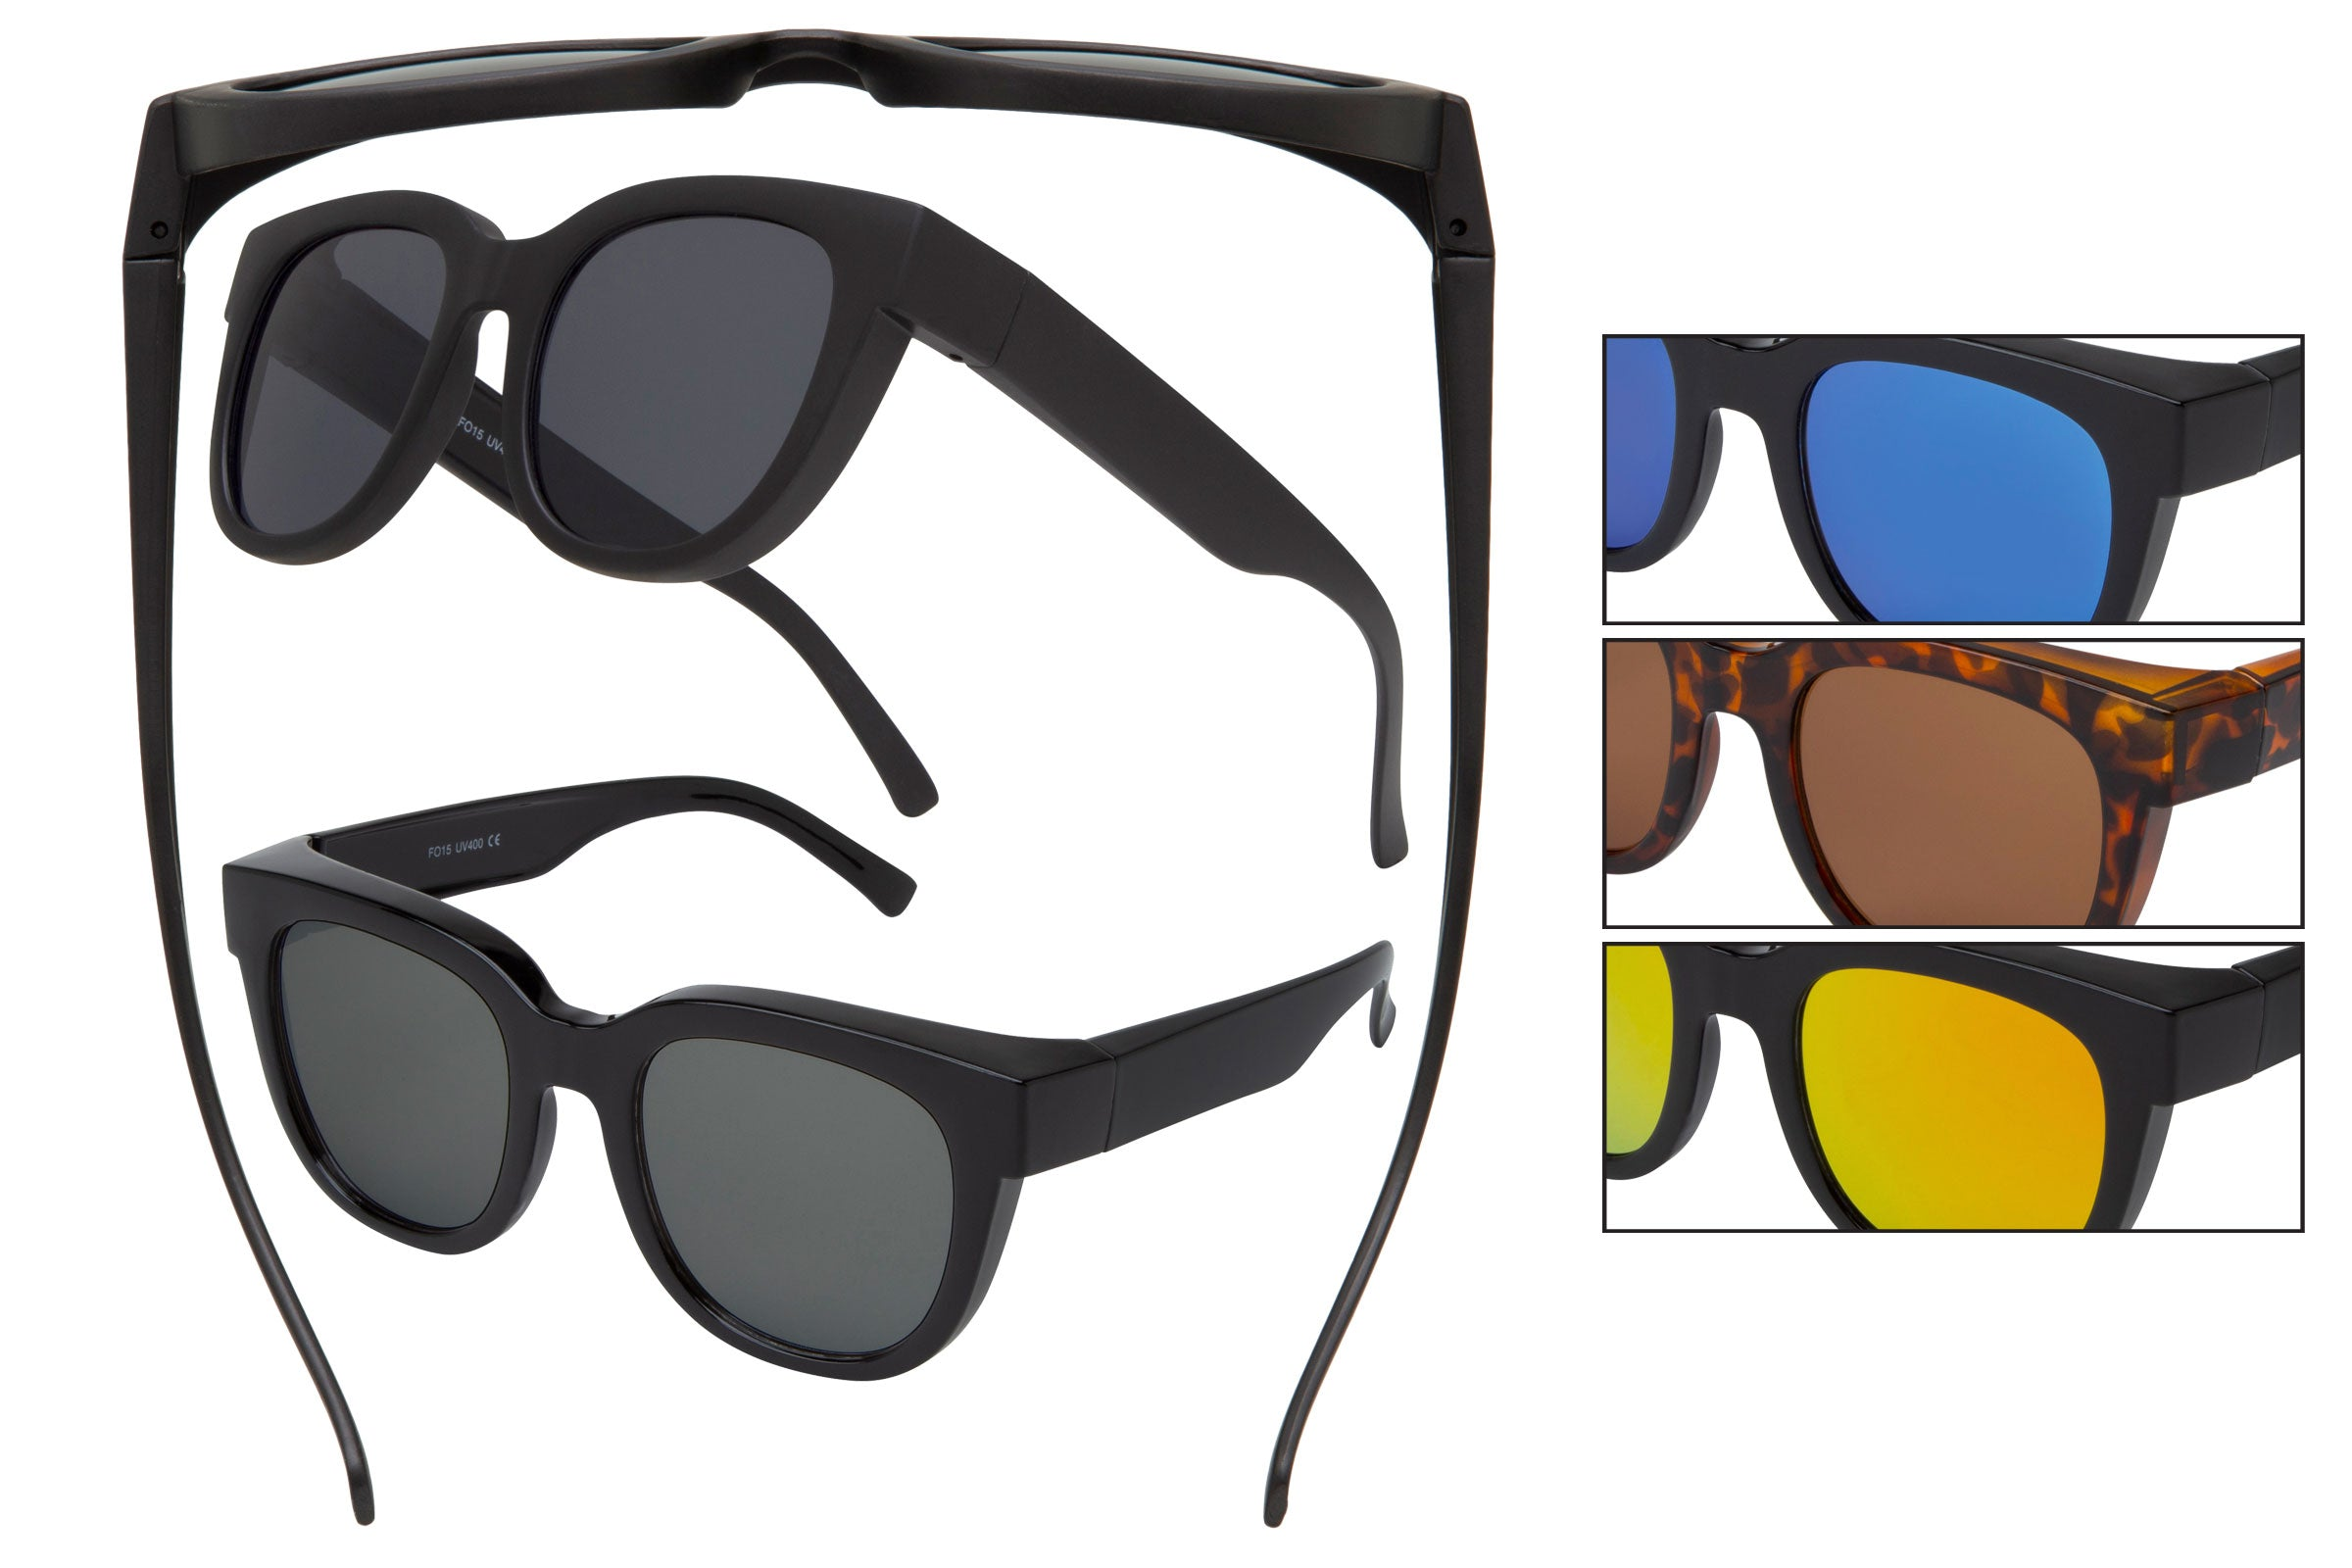 FO15 - Shaded Sunglasses - Fit Over Eyewear